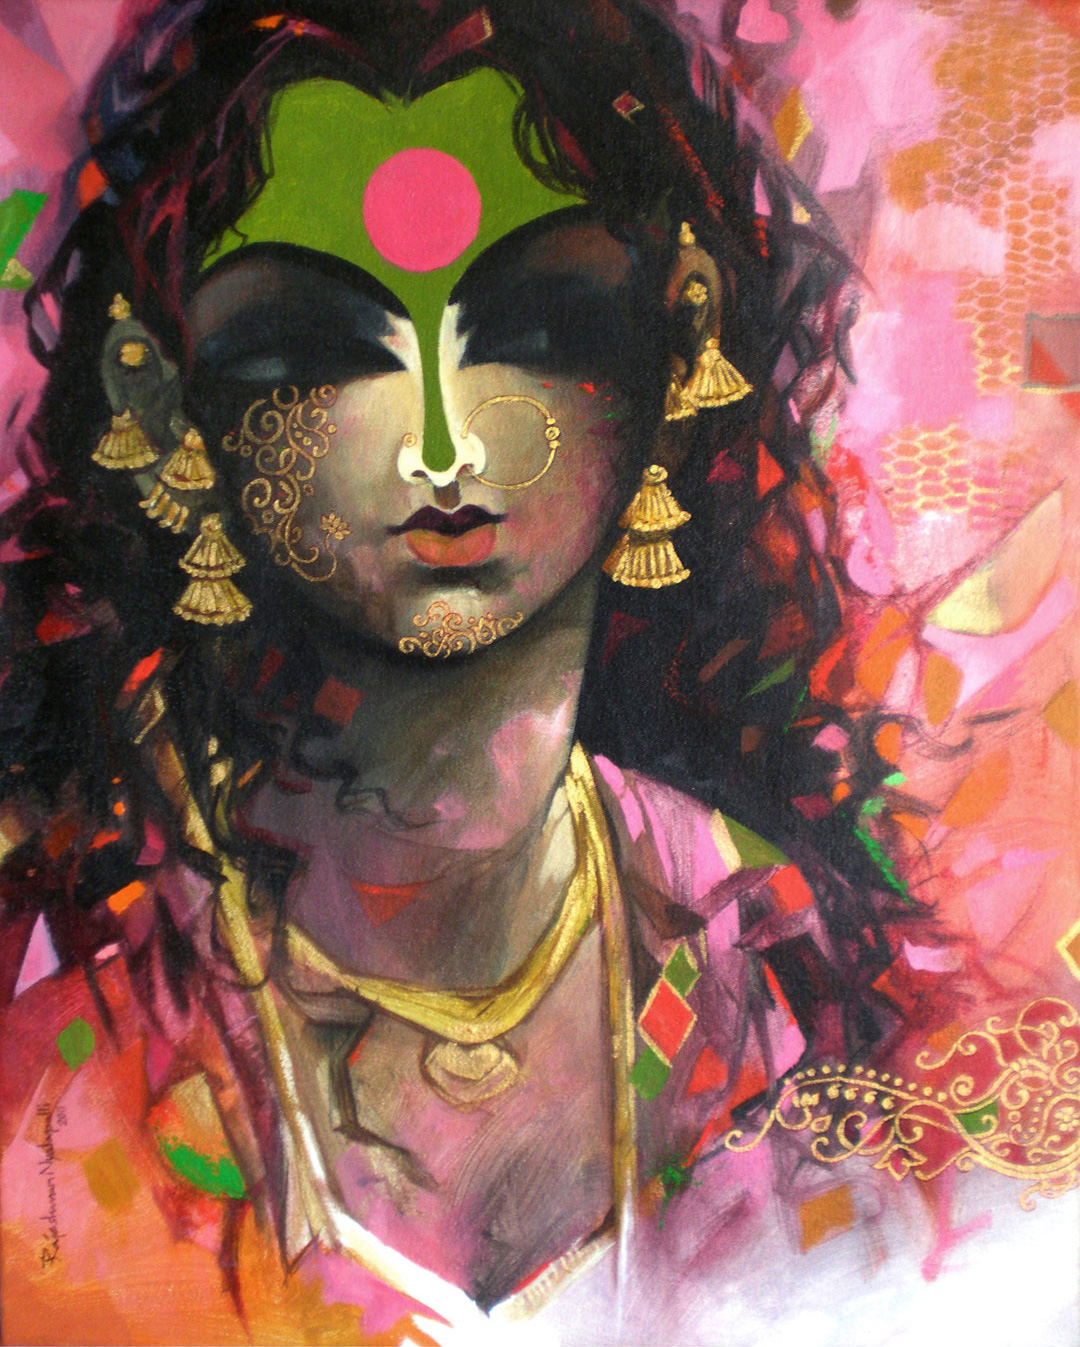 Buy 39 beauty 39 a beautiful painting by indian artist for Buy art online india